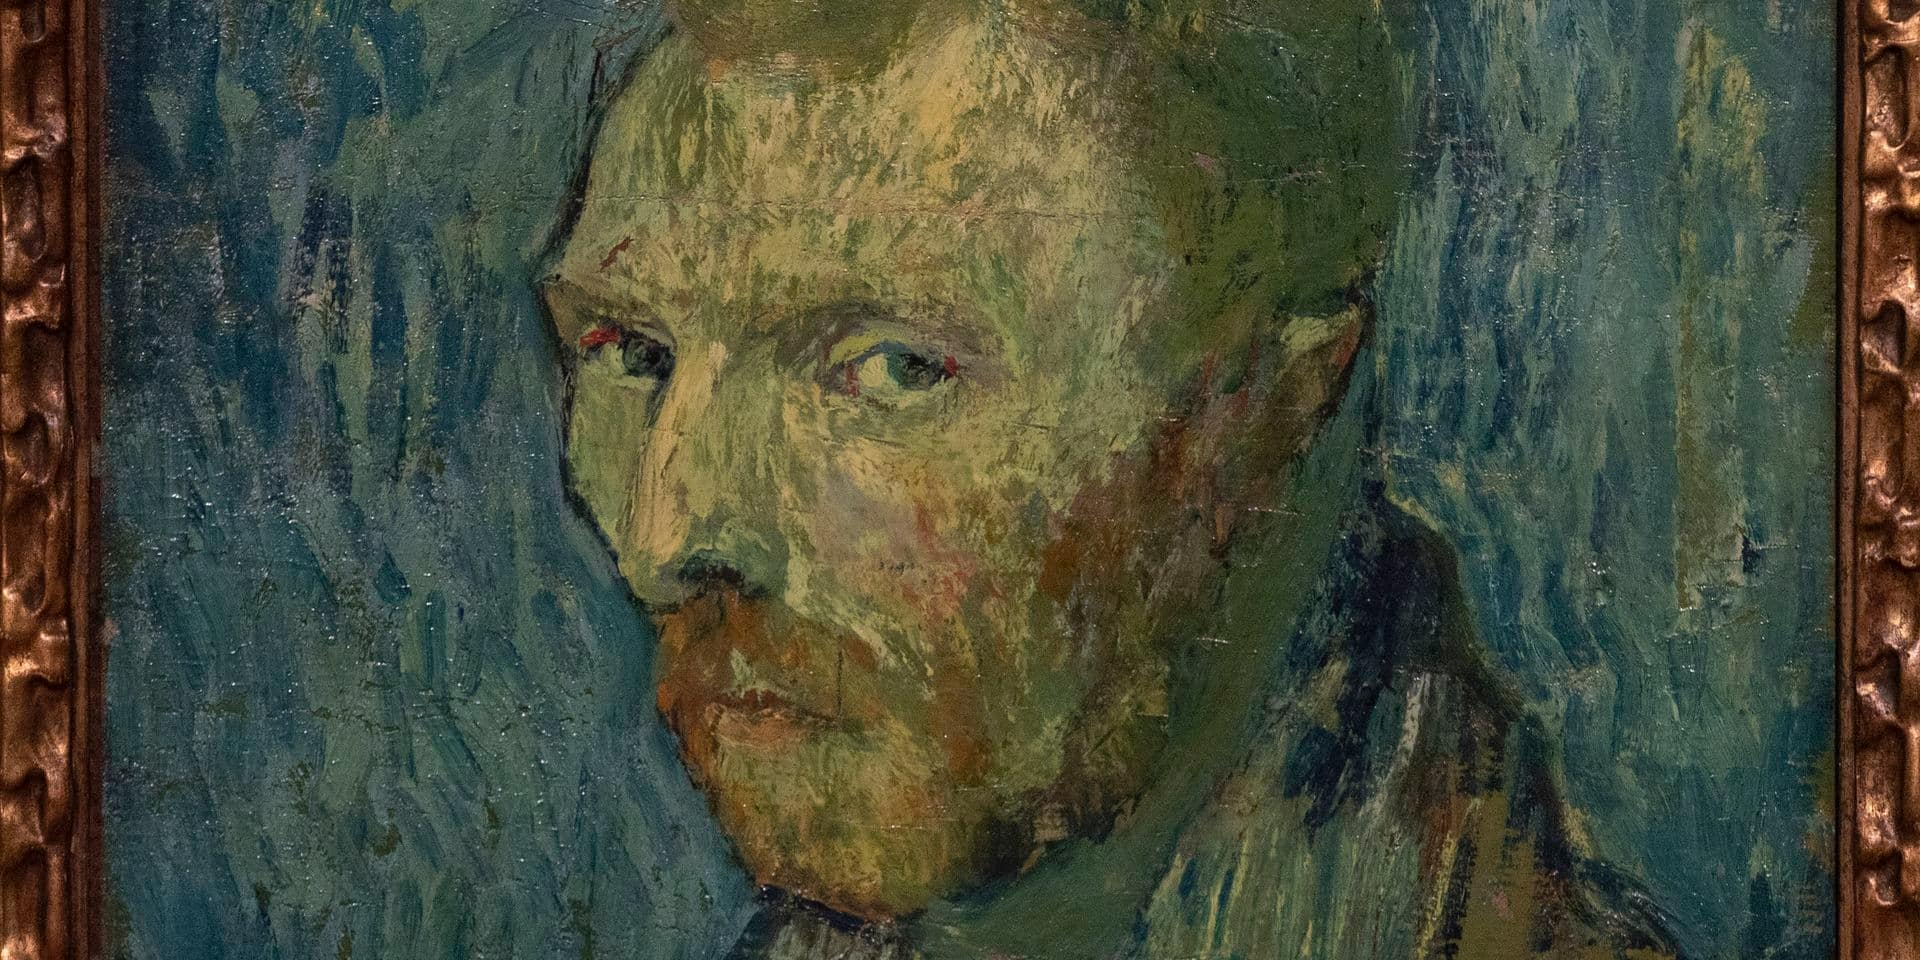 Les experts confirment l'authenticité d'un autoportrait de Van Gogh